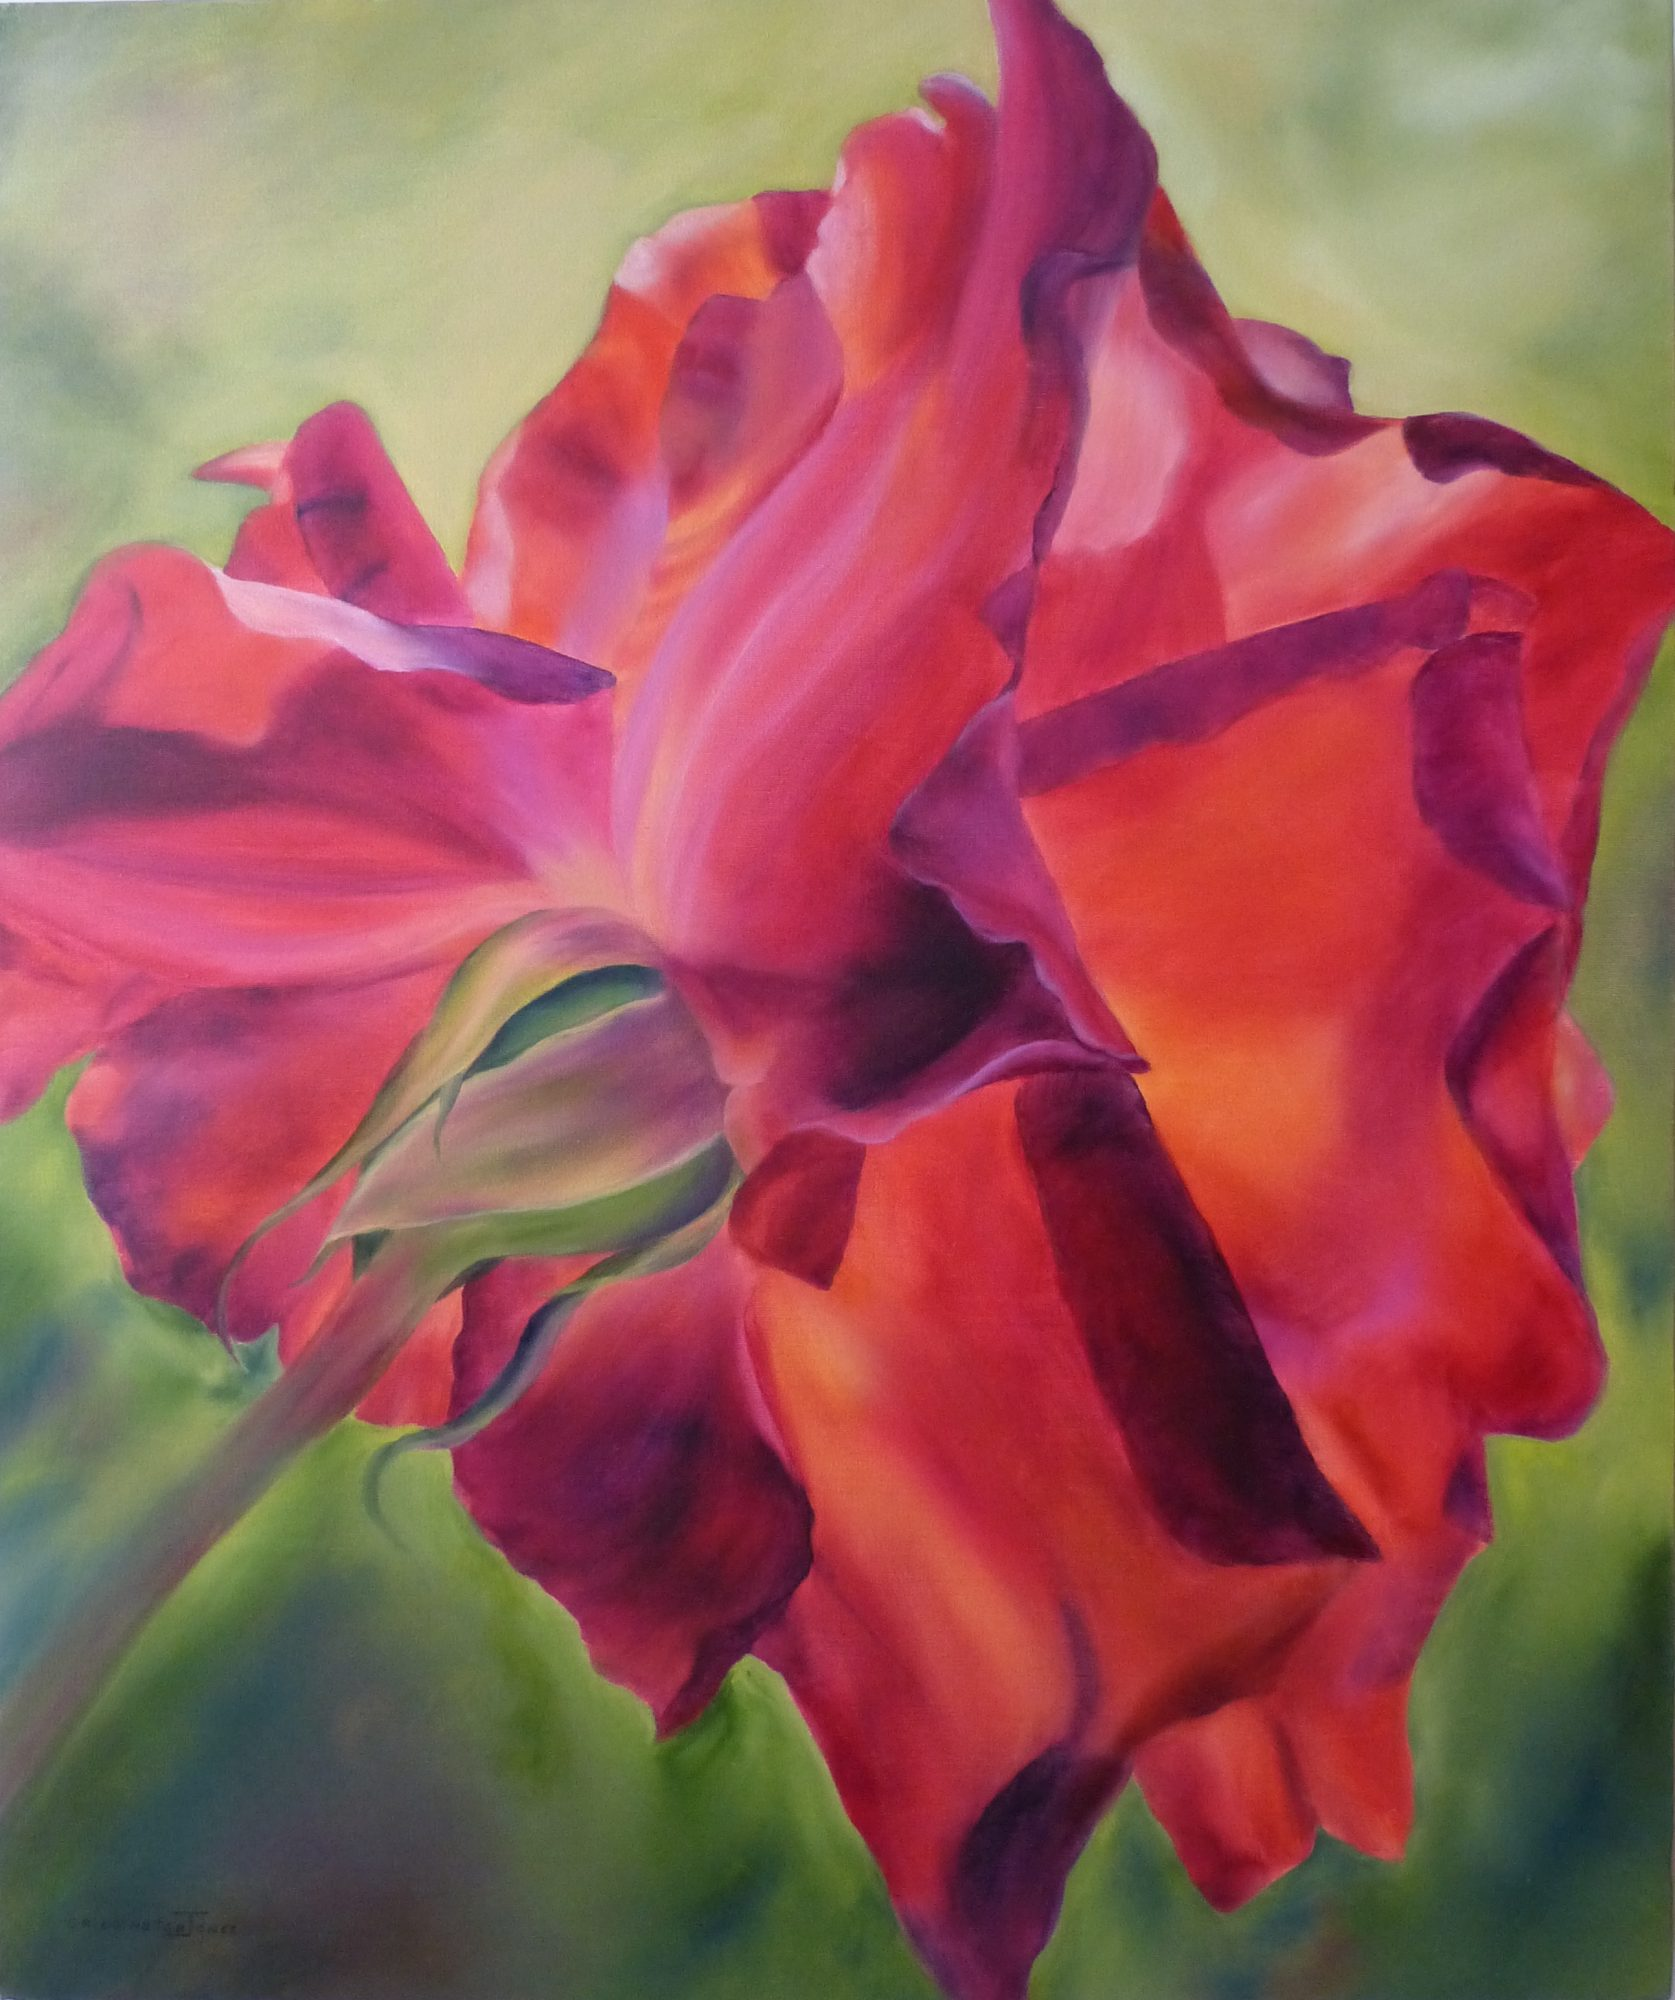 a-fiery-beauty-oil-clare-riddington-jones-76cm-x-90cm